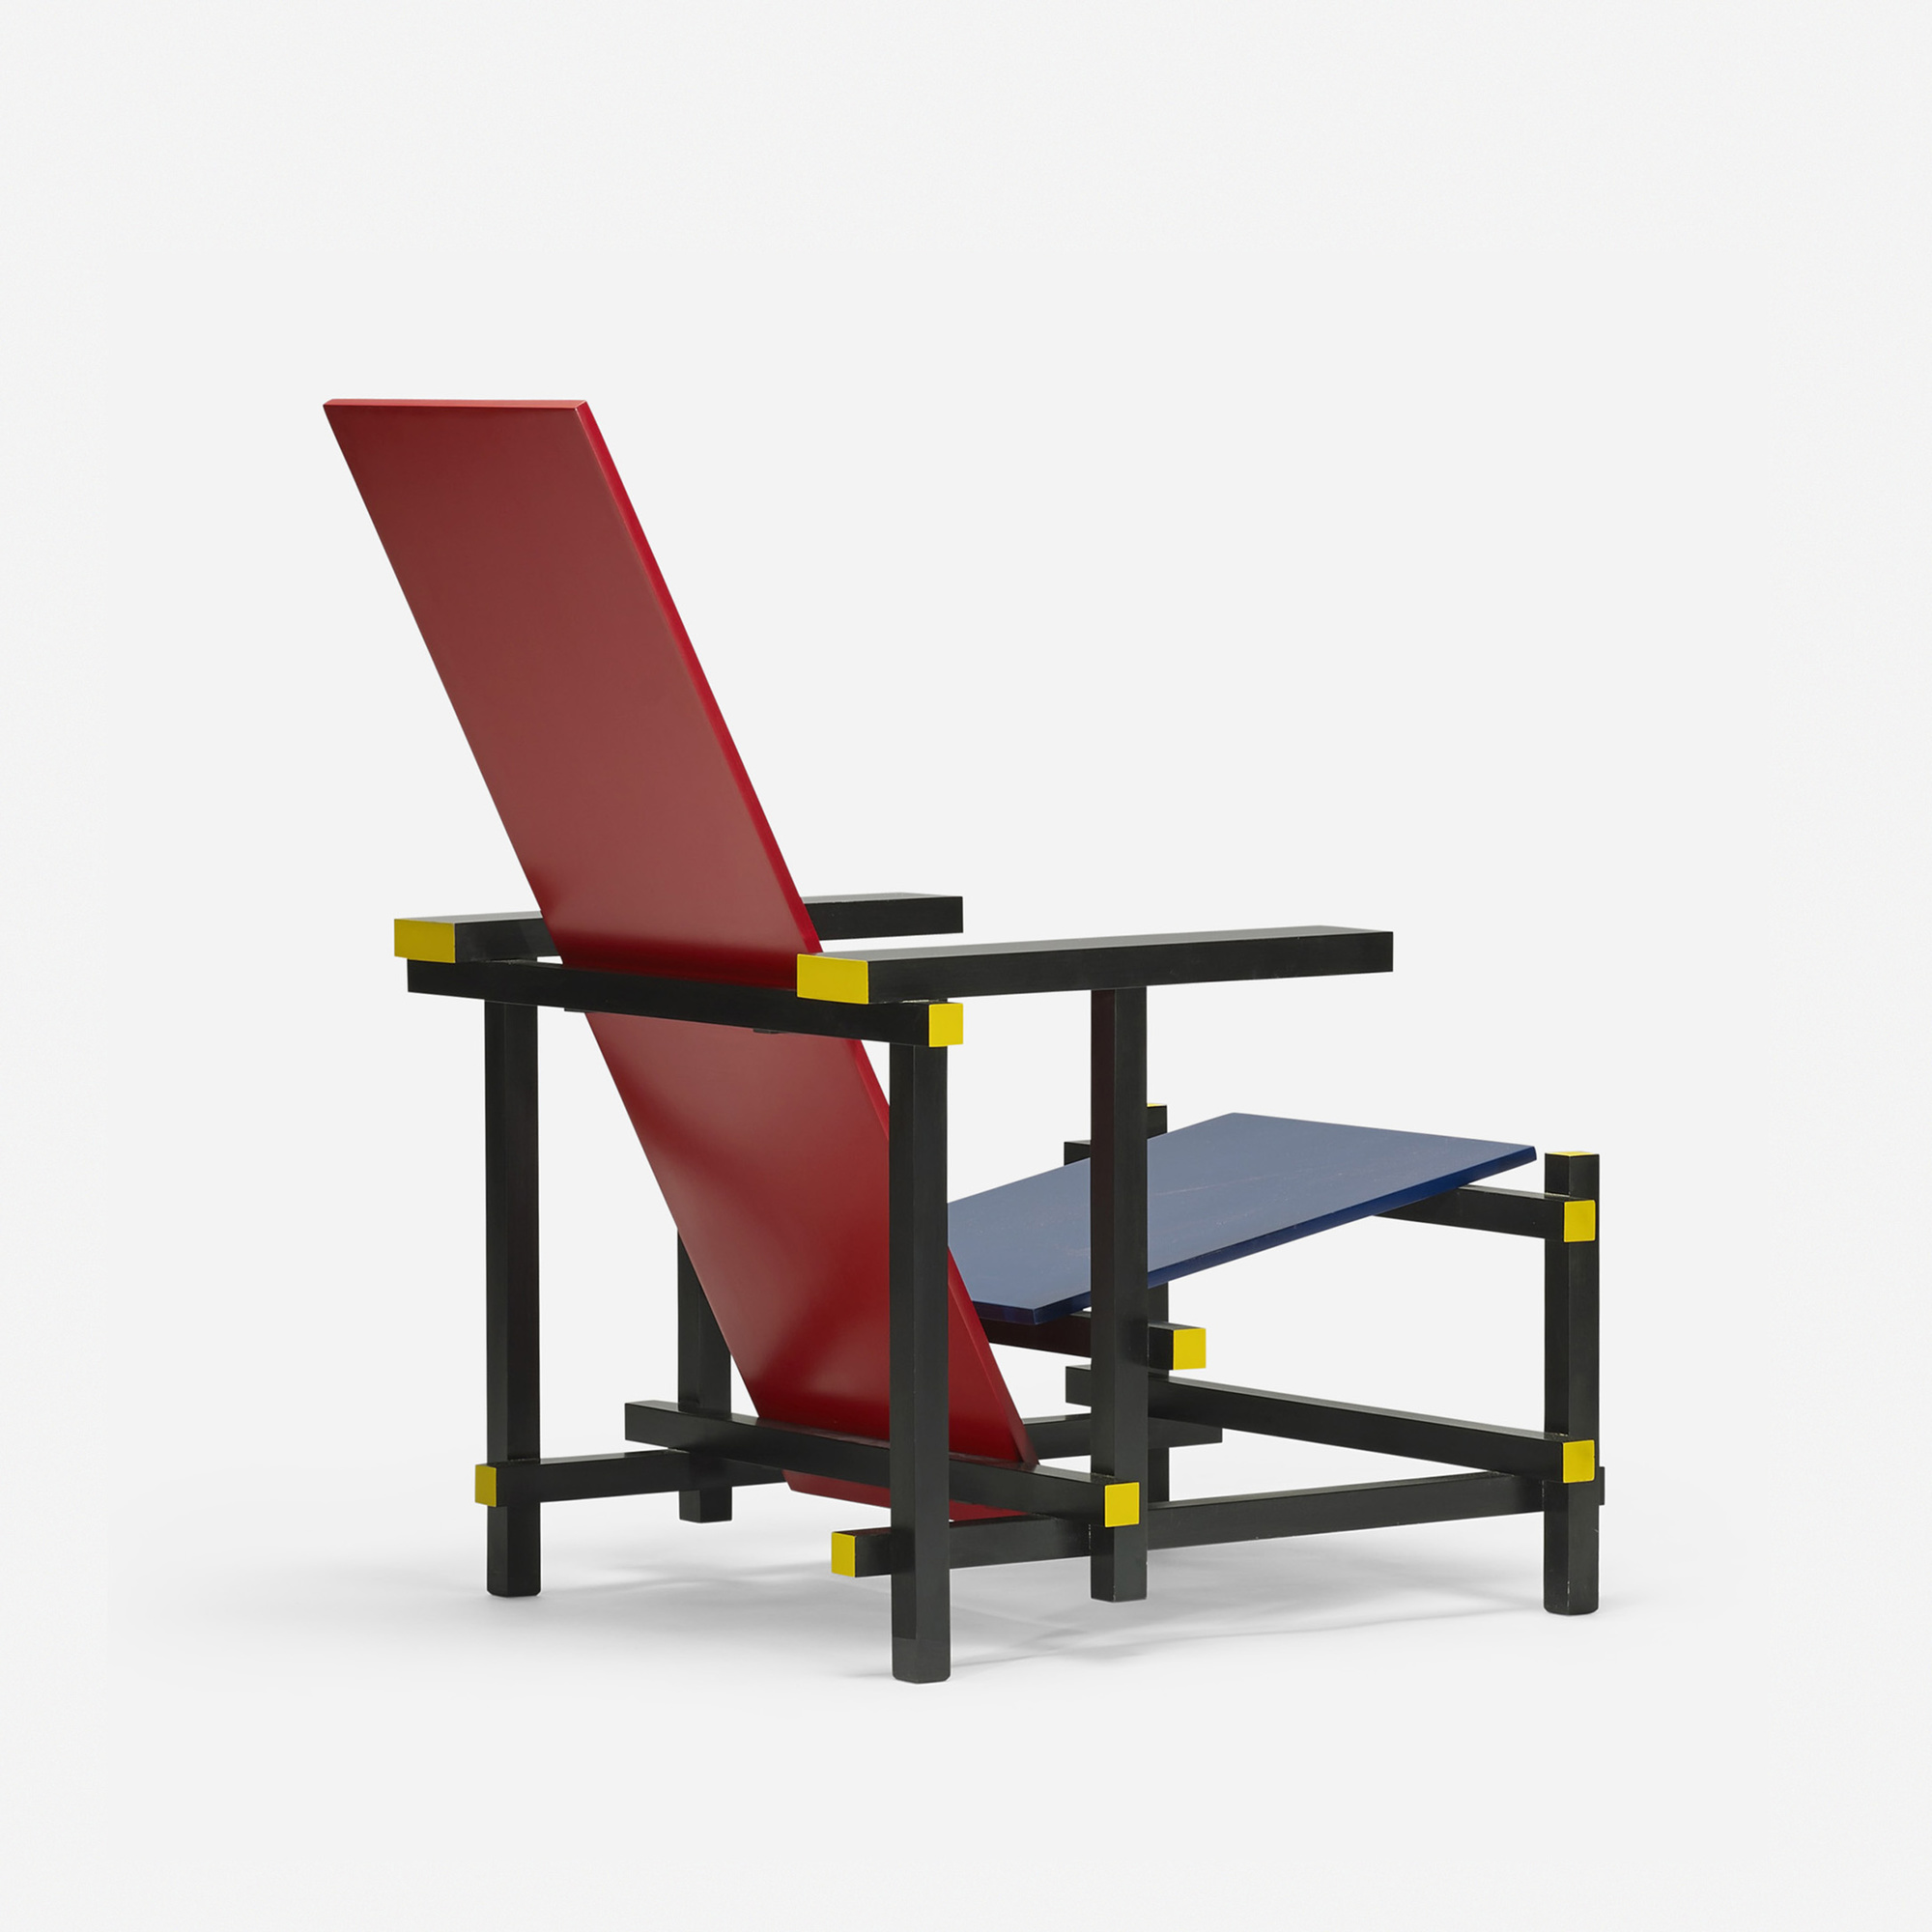 380: Gerrit Rietveld / Red Blue chair (1 of 3)